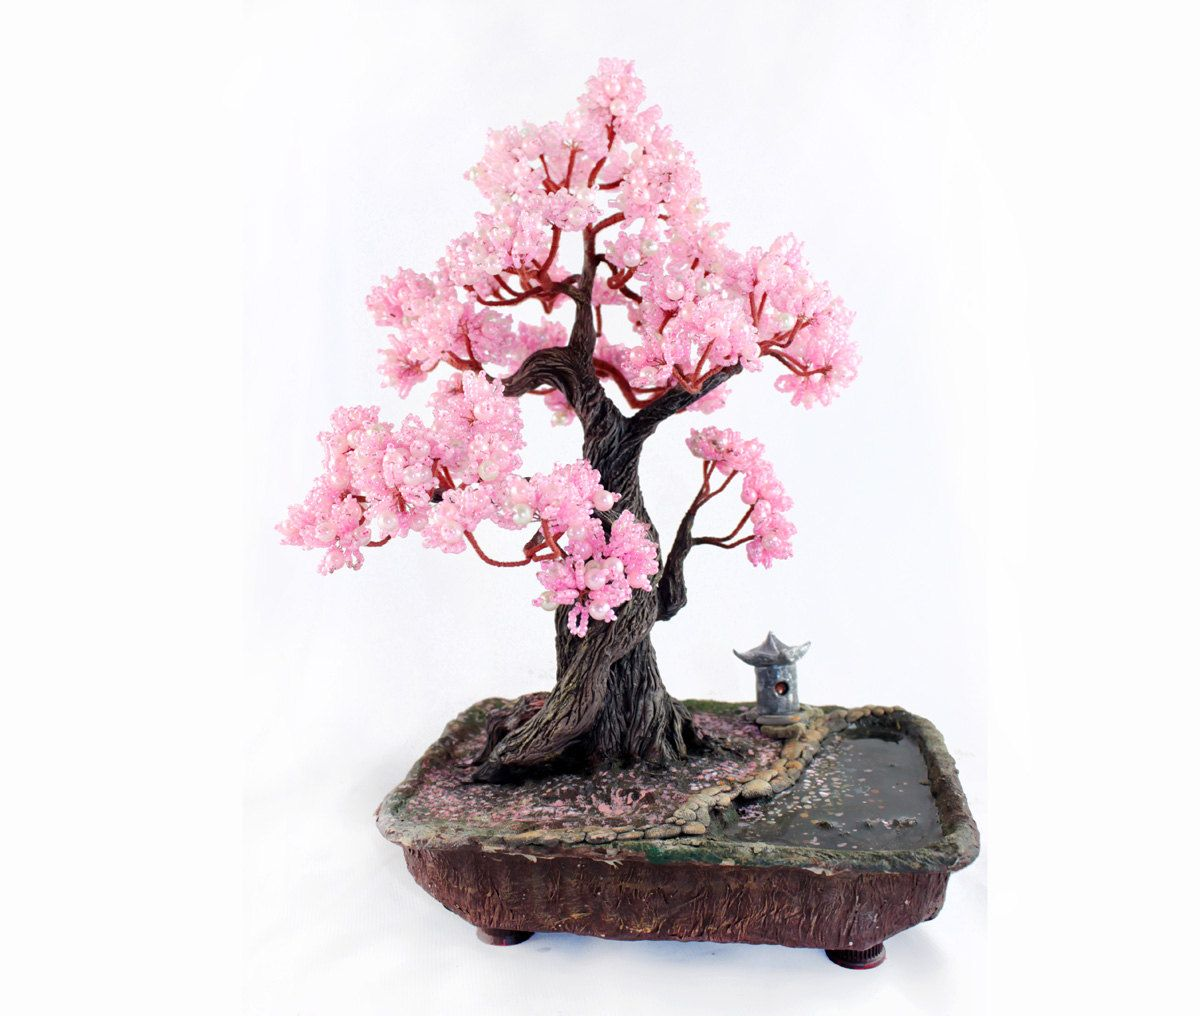 Spring Flowering Bonsai Tree Pink Beads Anese Style Paa Pond Gift For S And Women